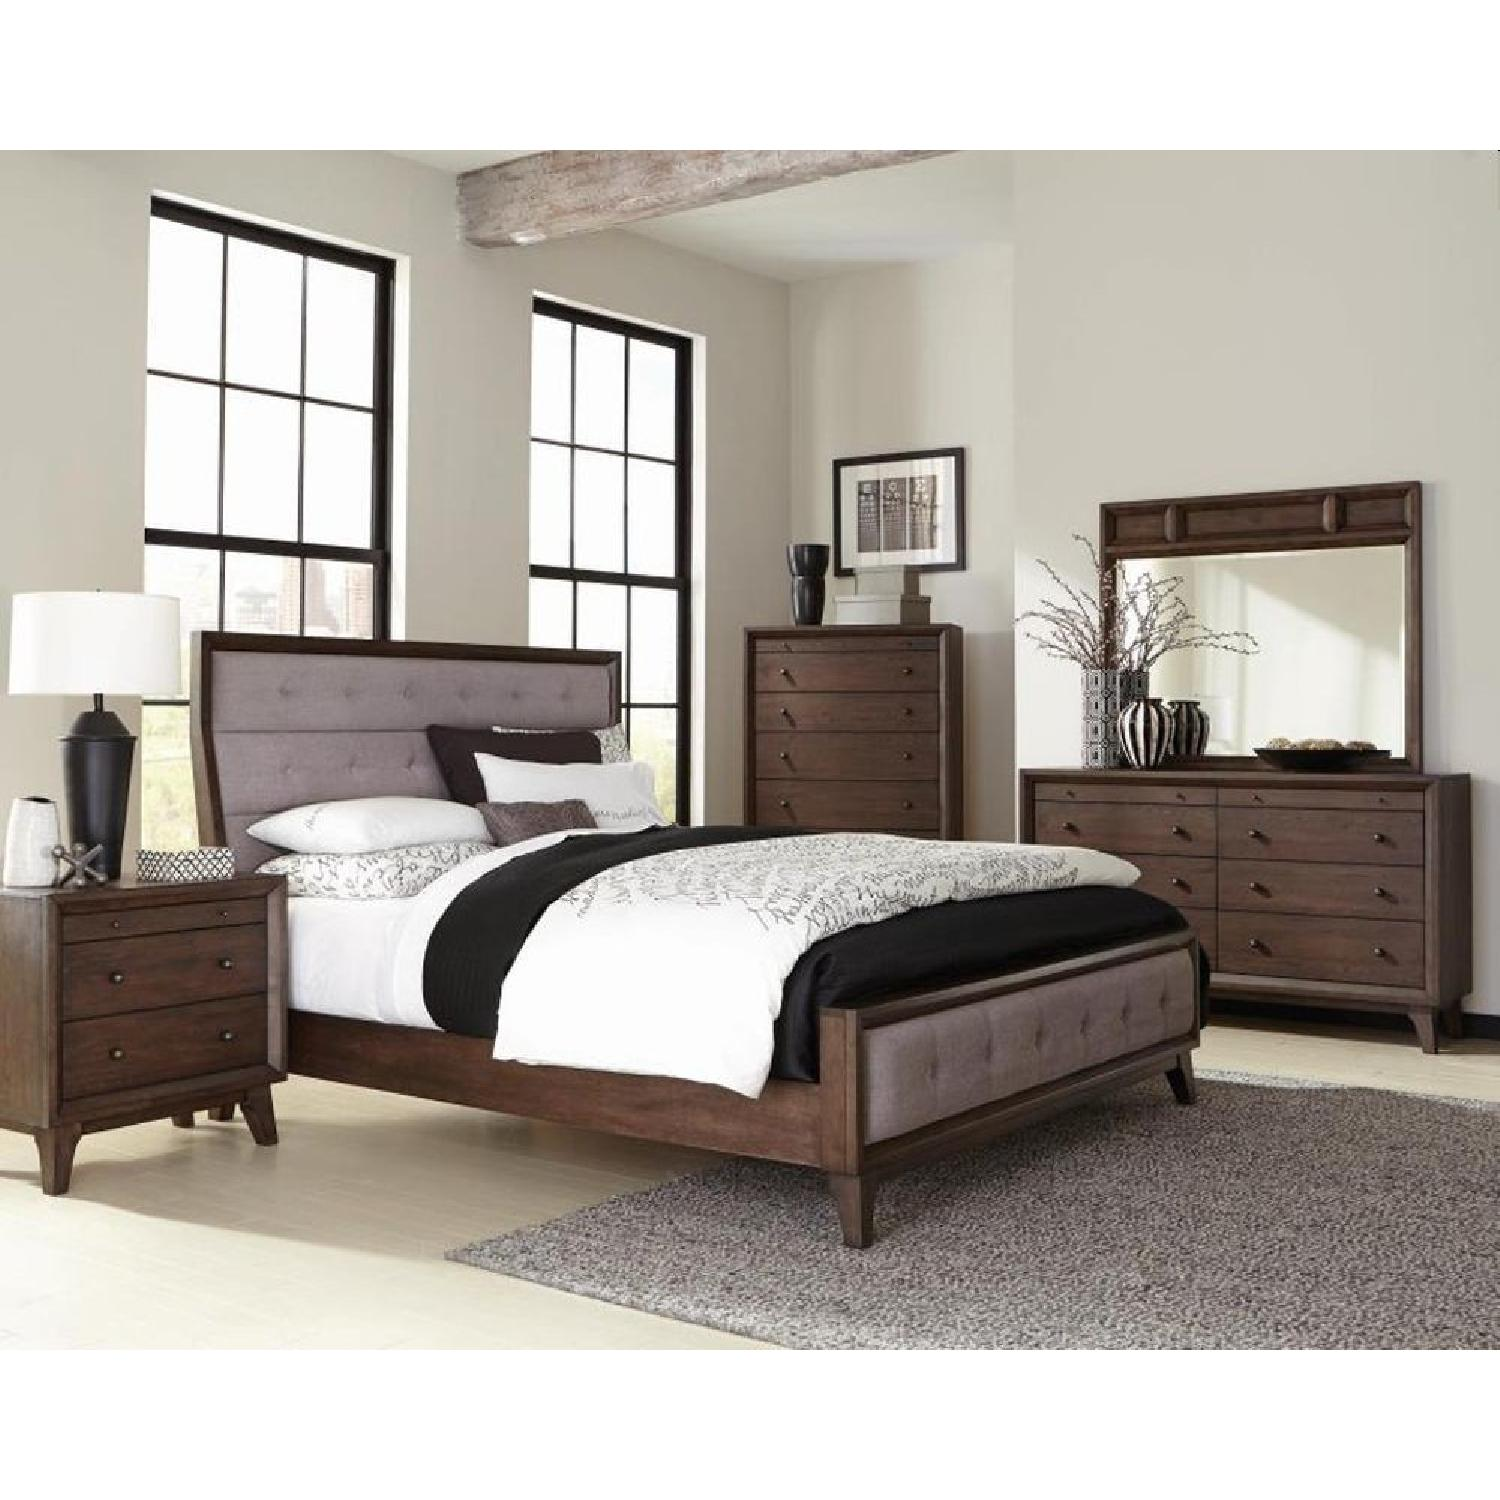 Modern Mid-Century Style Nightstand in Brown Finish - image-1